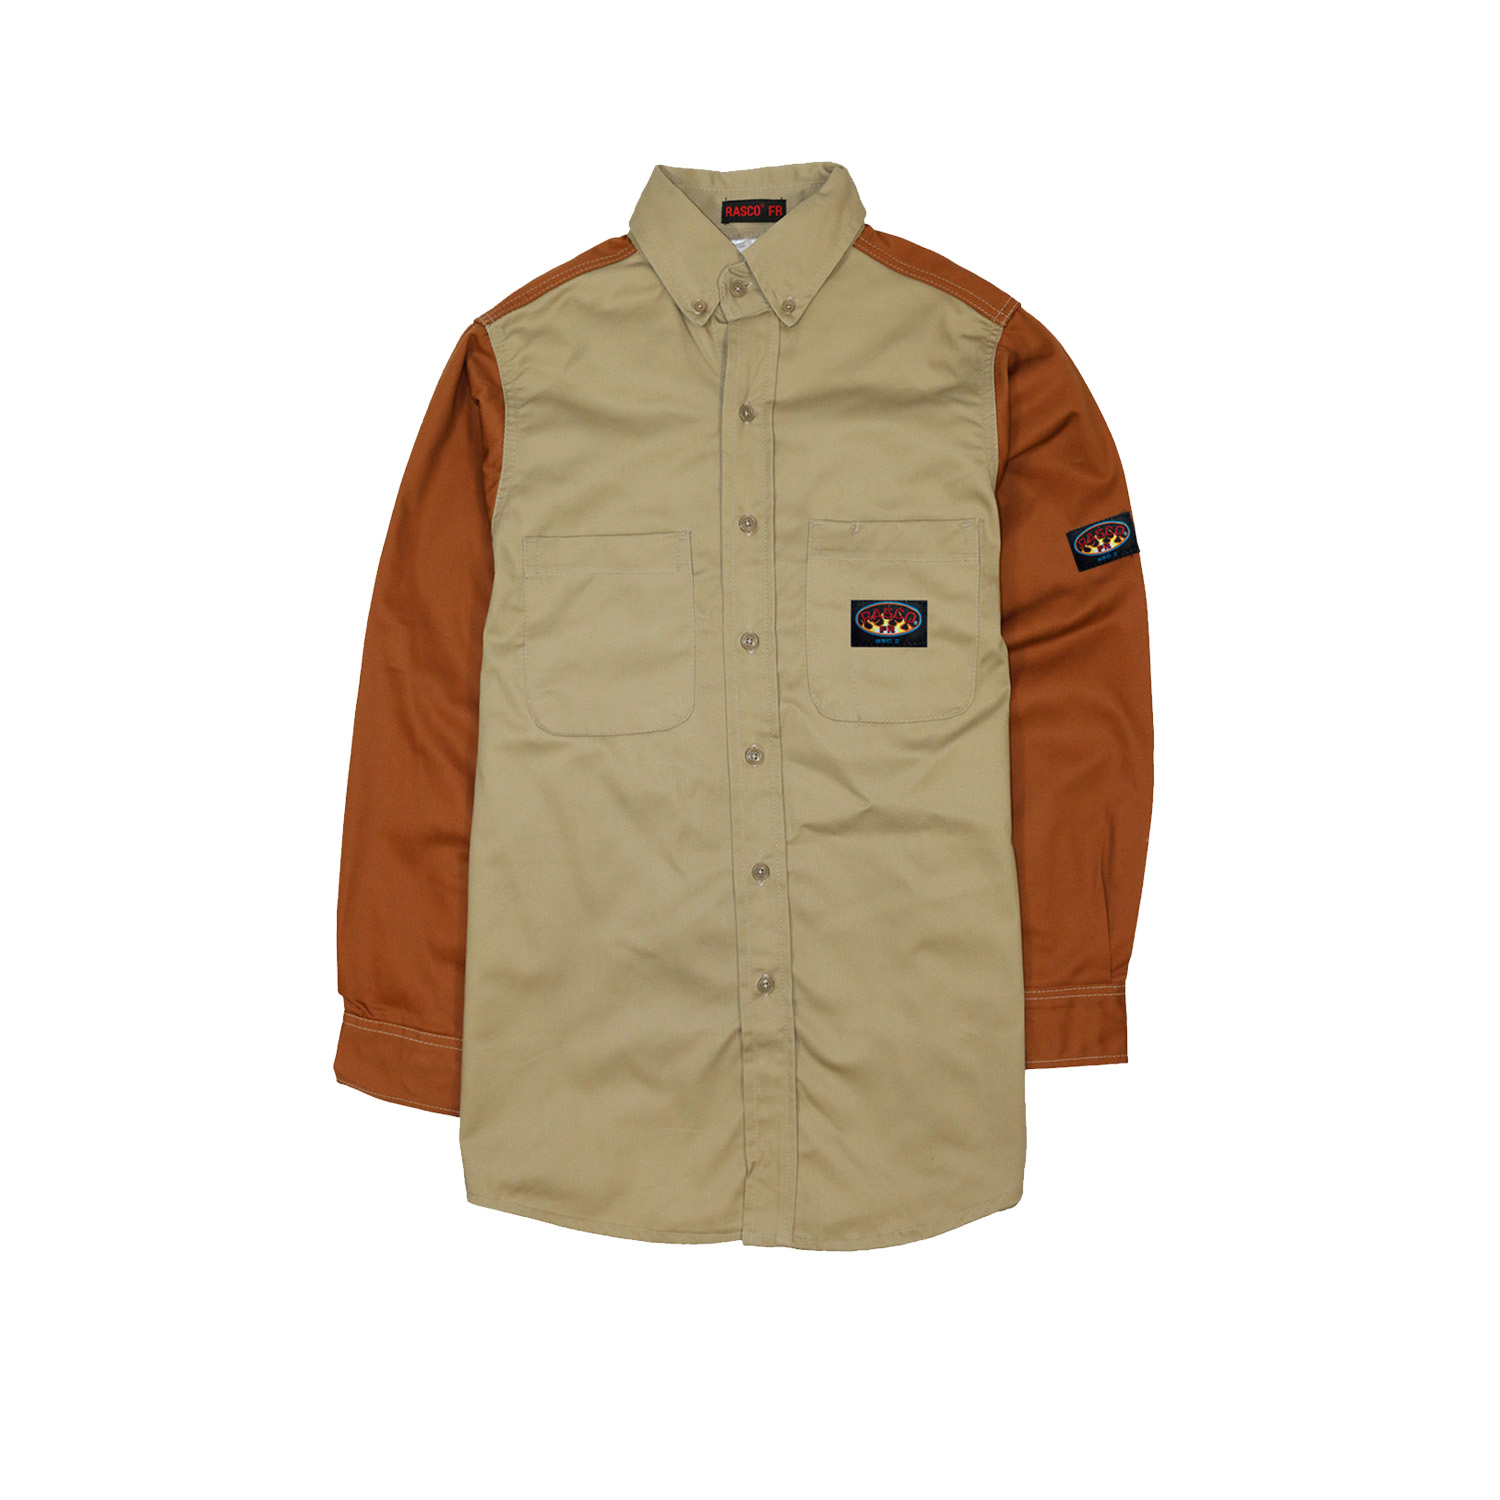 Khaki-Brown FR Two Tone Shirt